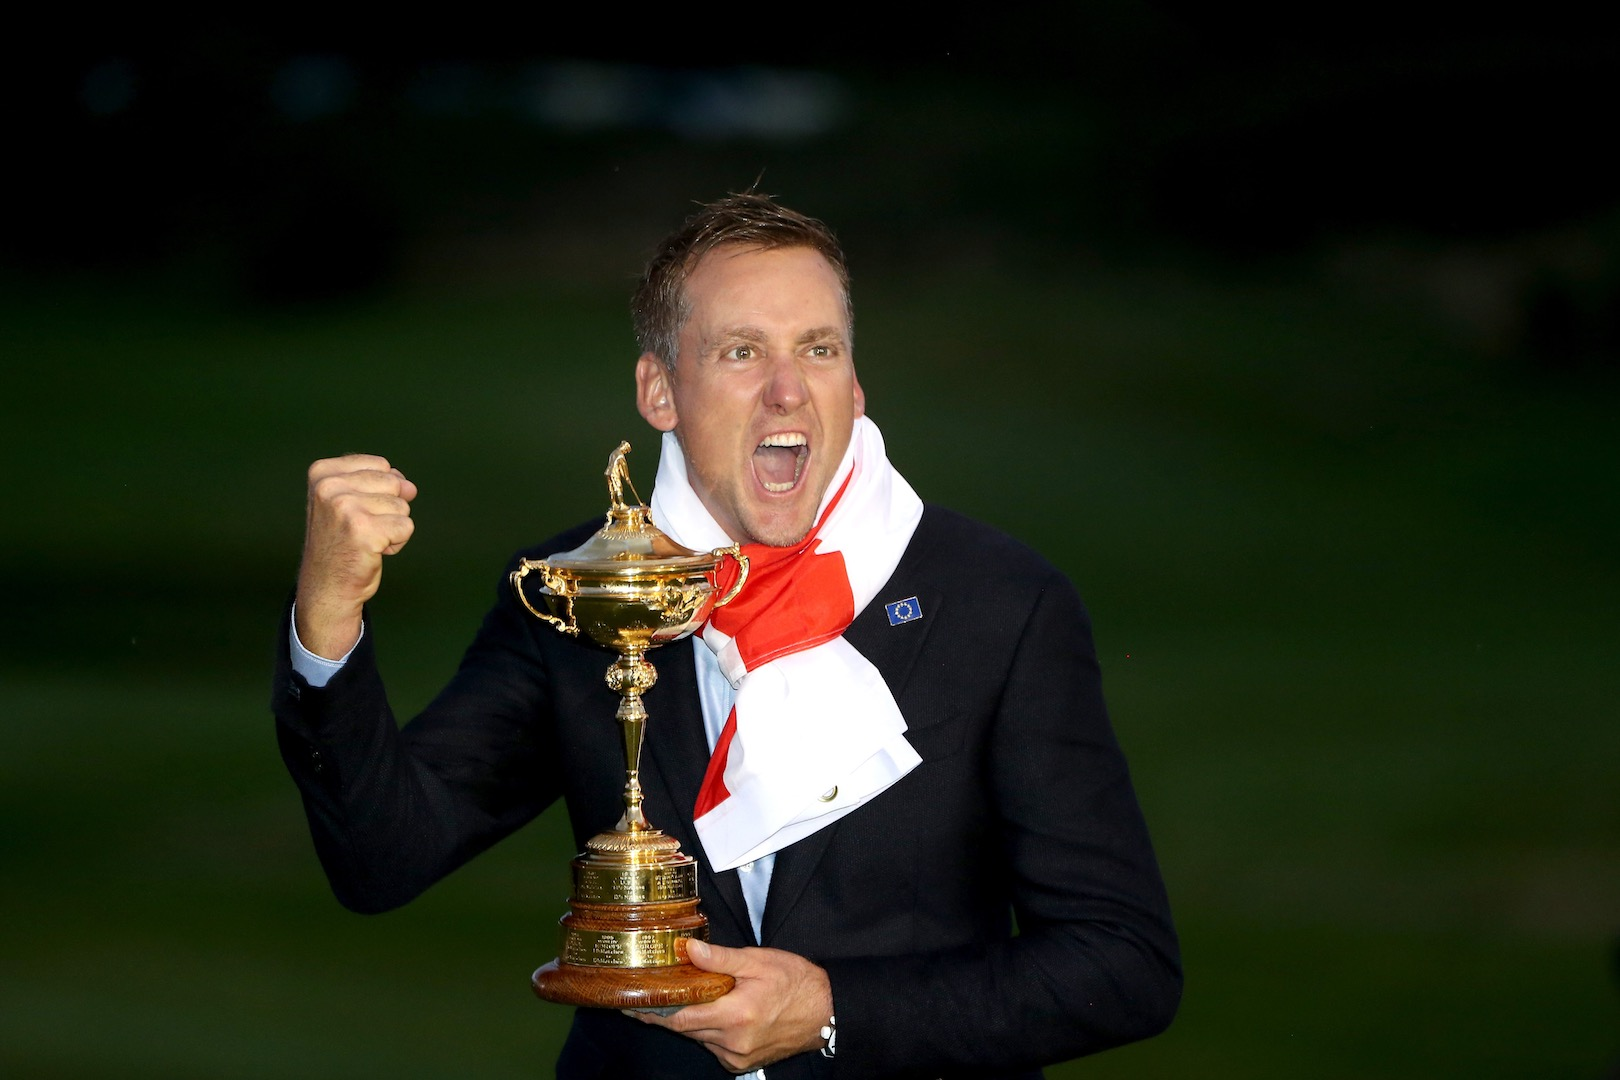 Ian Poulter named Ryder Cup Vice Captain